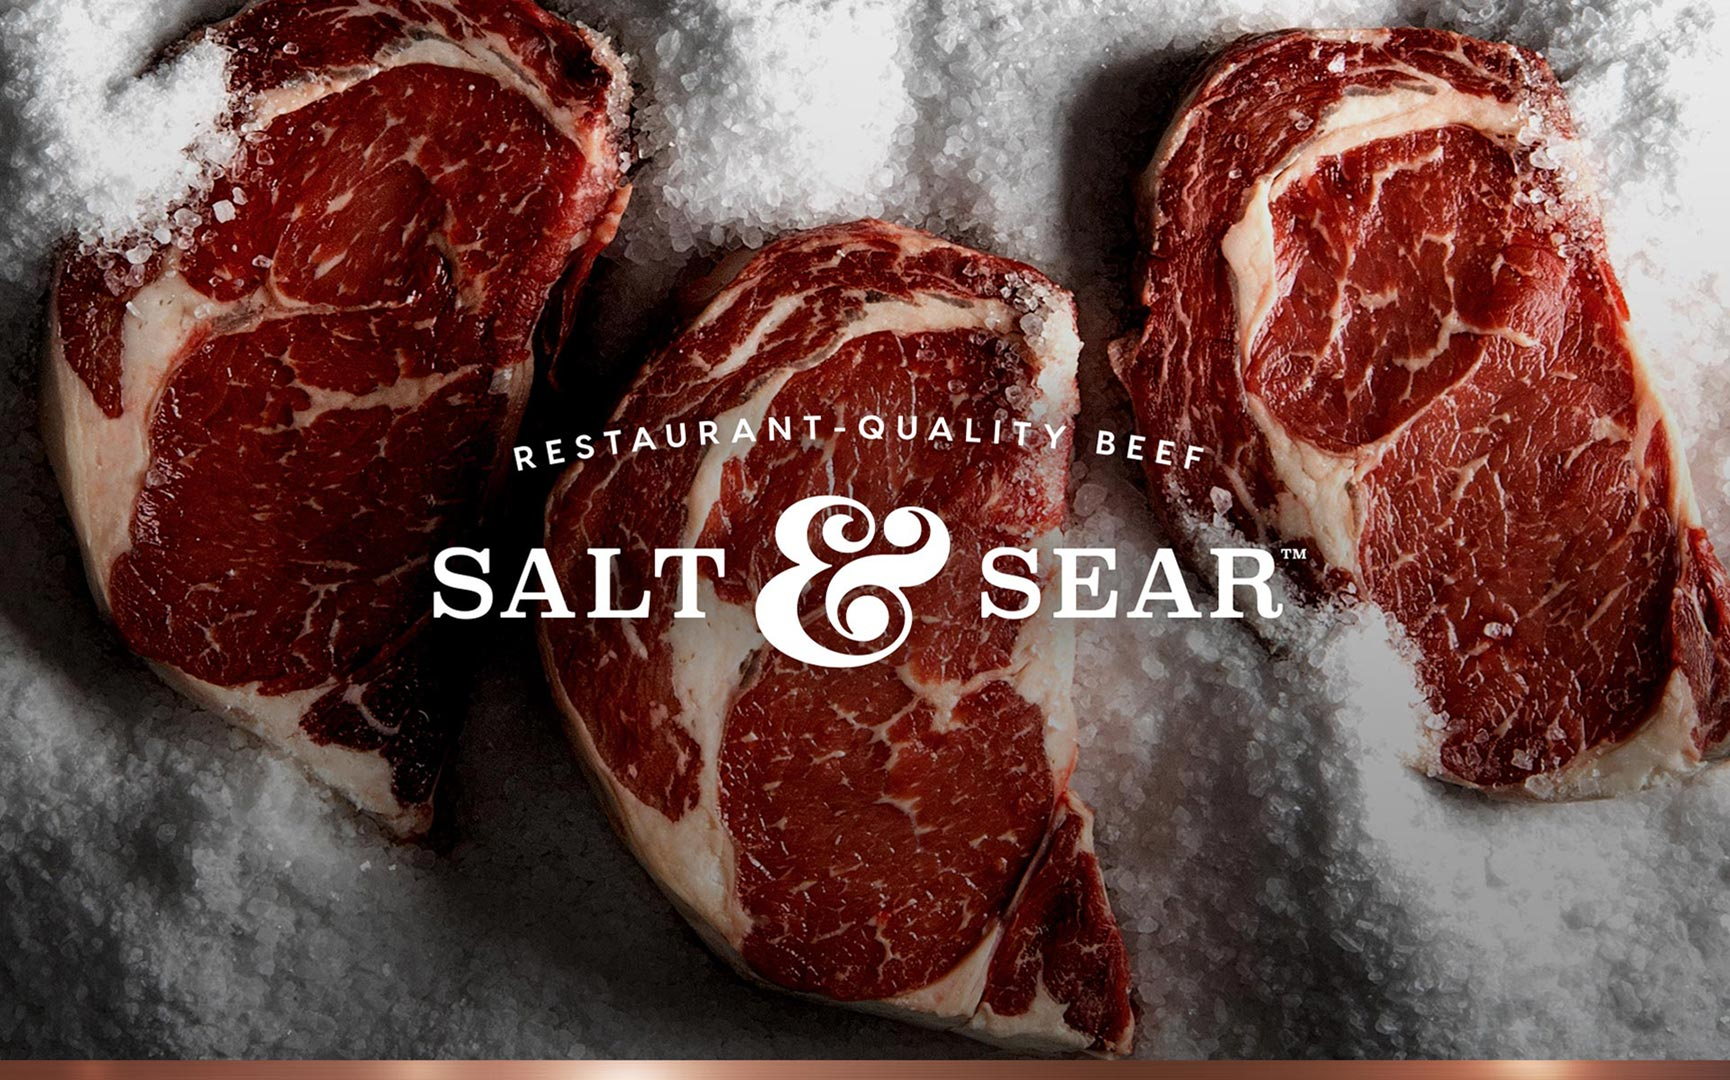 Salt & Sear Restaurant-Quality Beef branding. Logo emblazoned on ribeyes, embedded in salt.